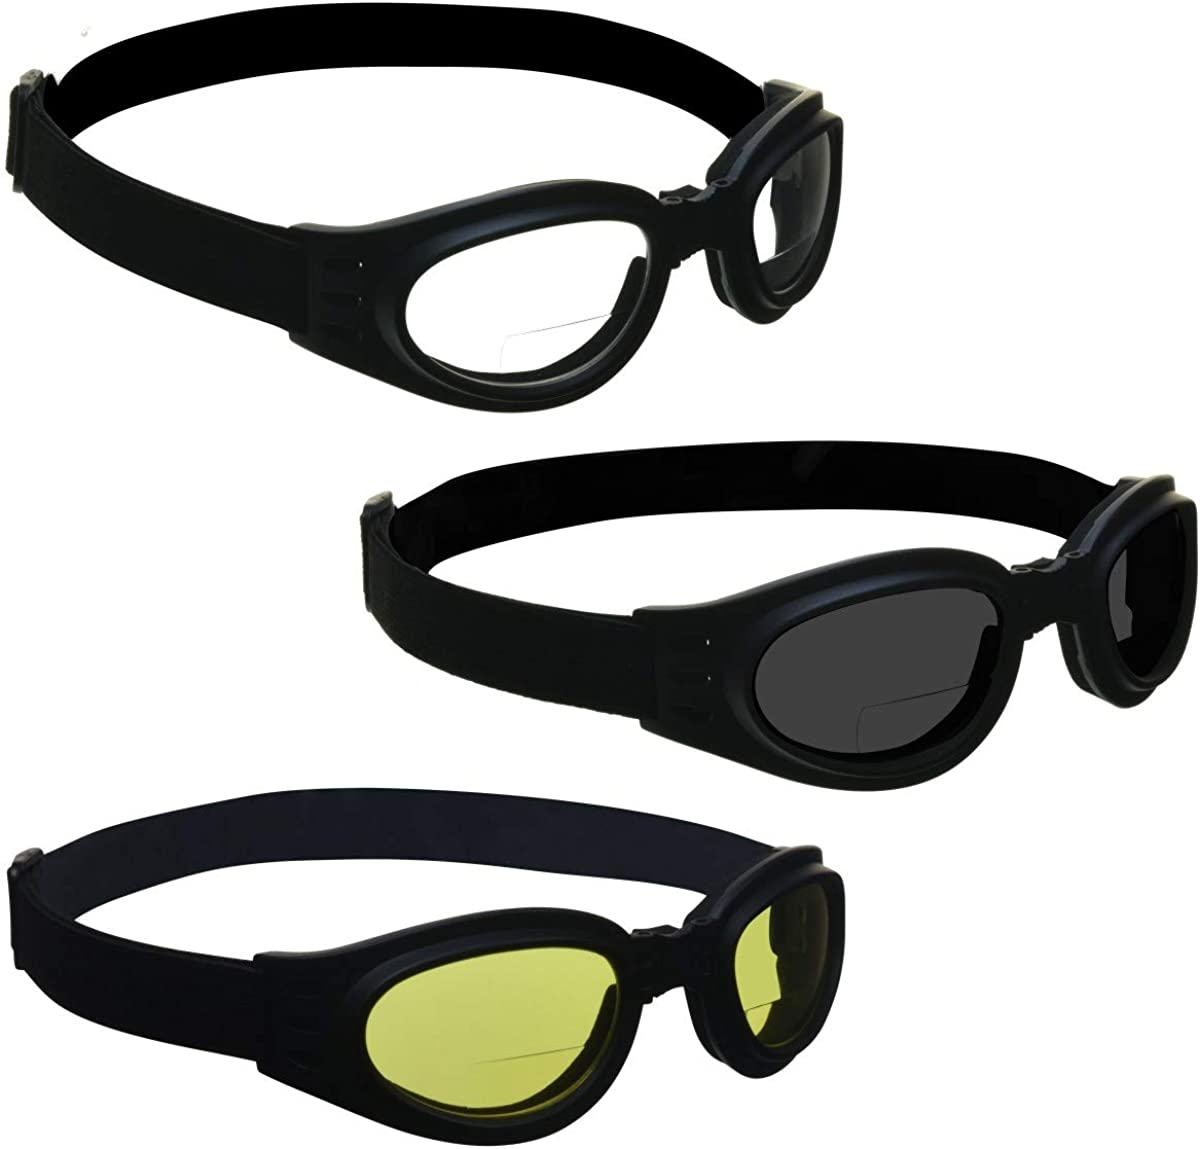 BIKERSHADES Safety Bifocal Be super welcome Sunglass Readers Max 62% OFF Foldable Pad Goggles